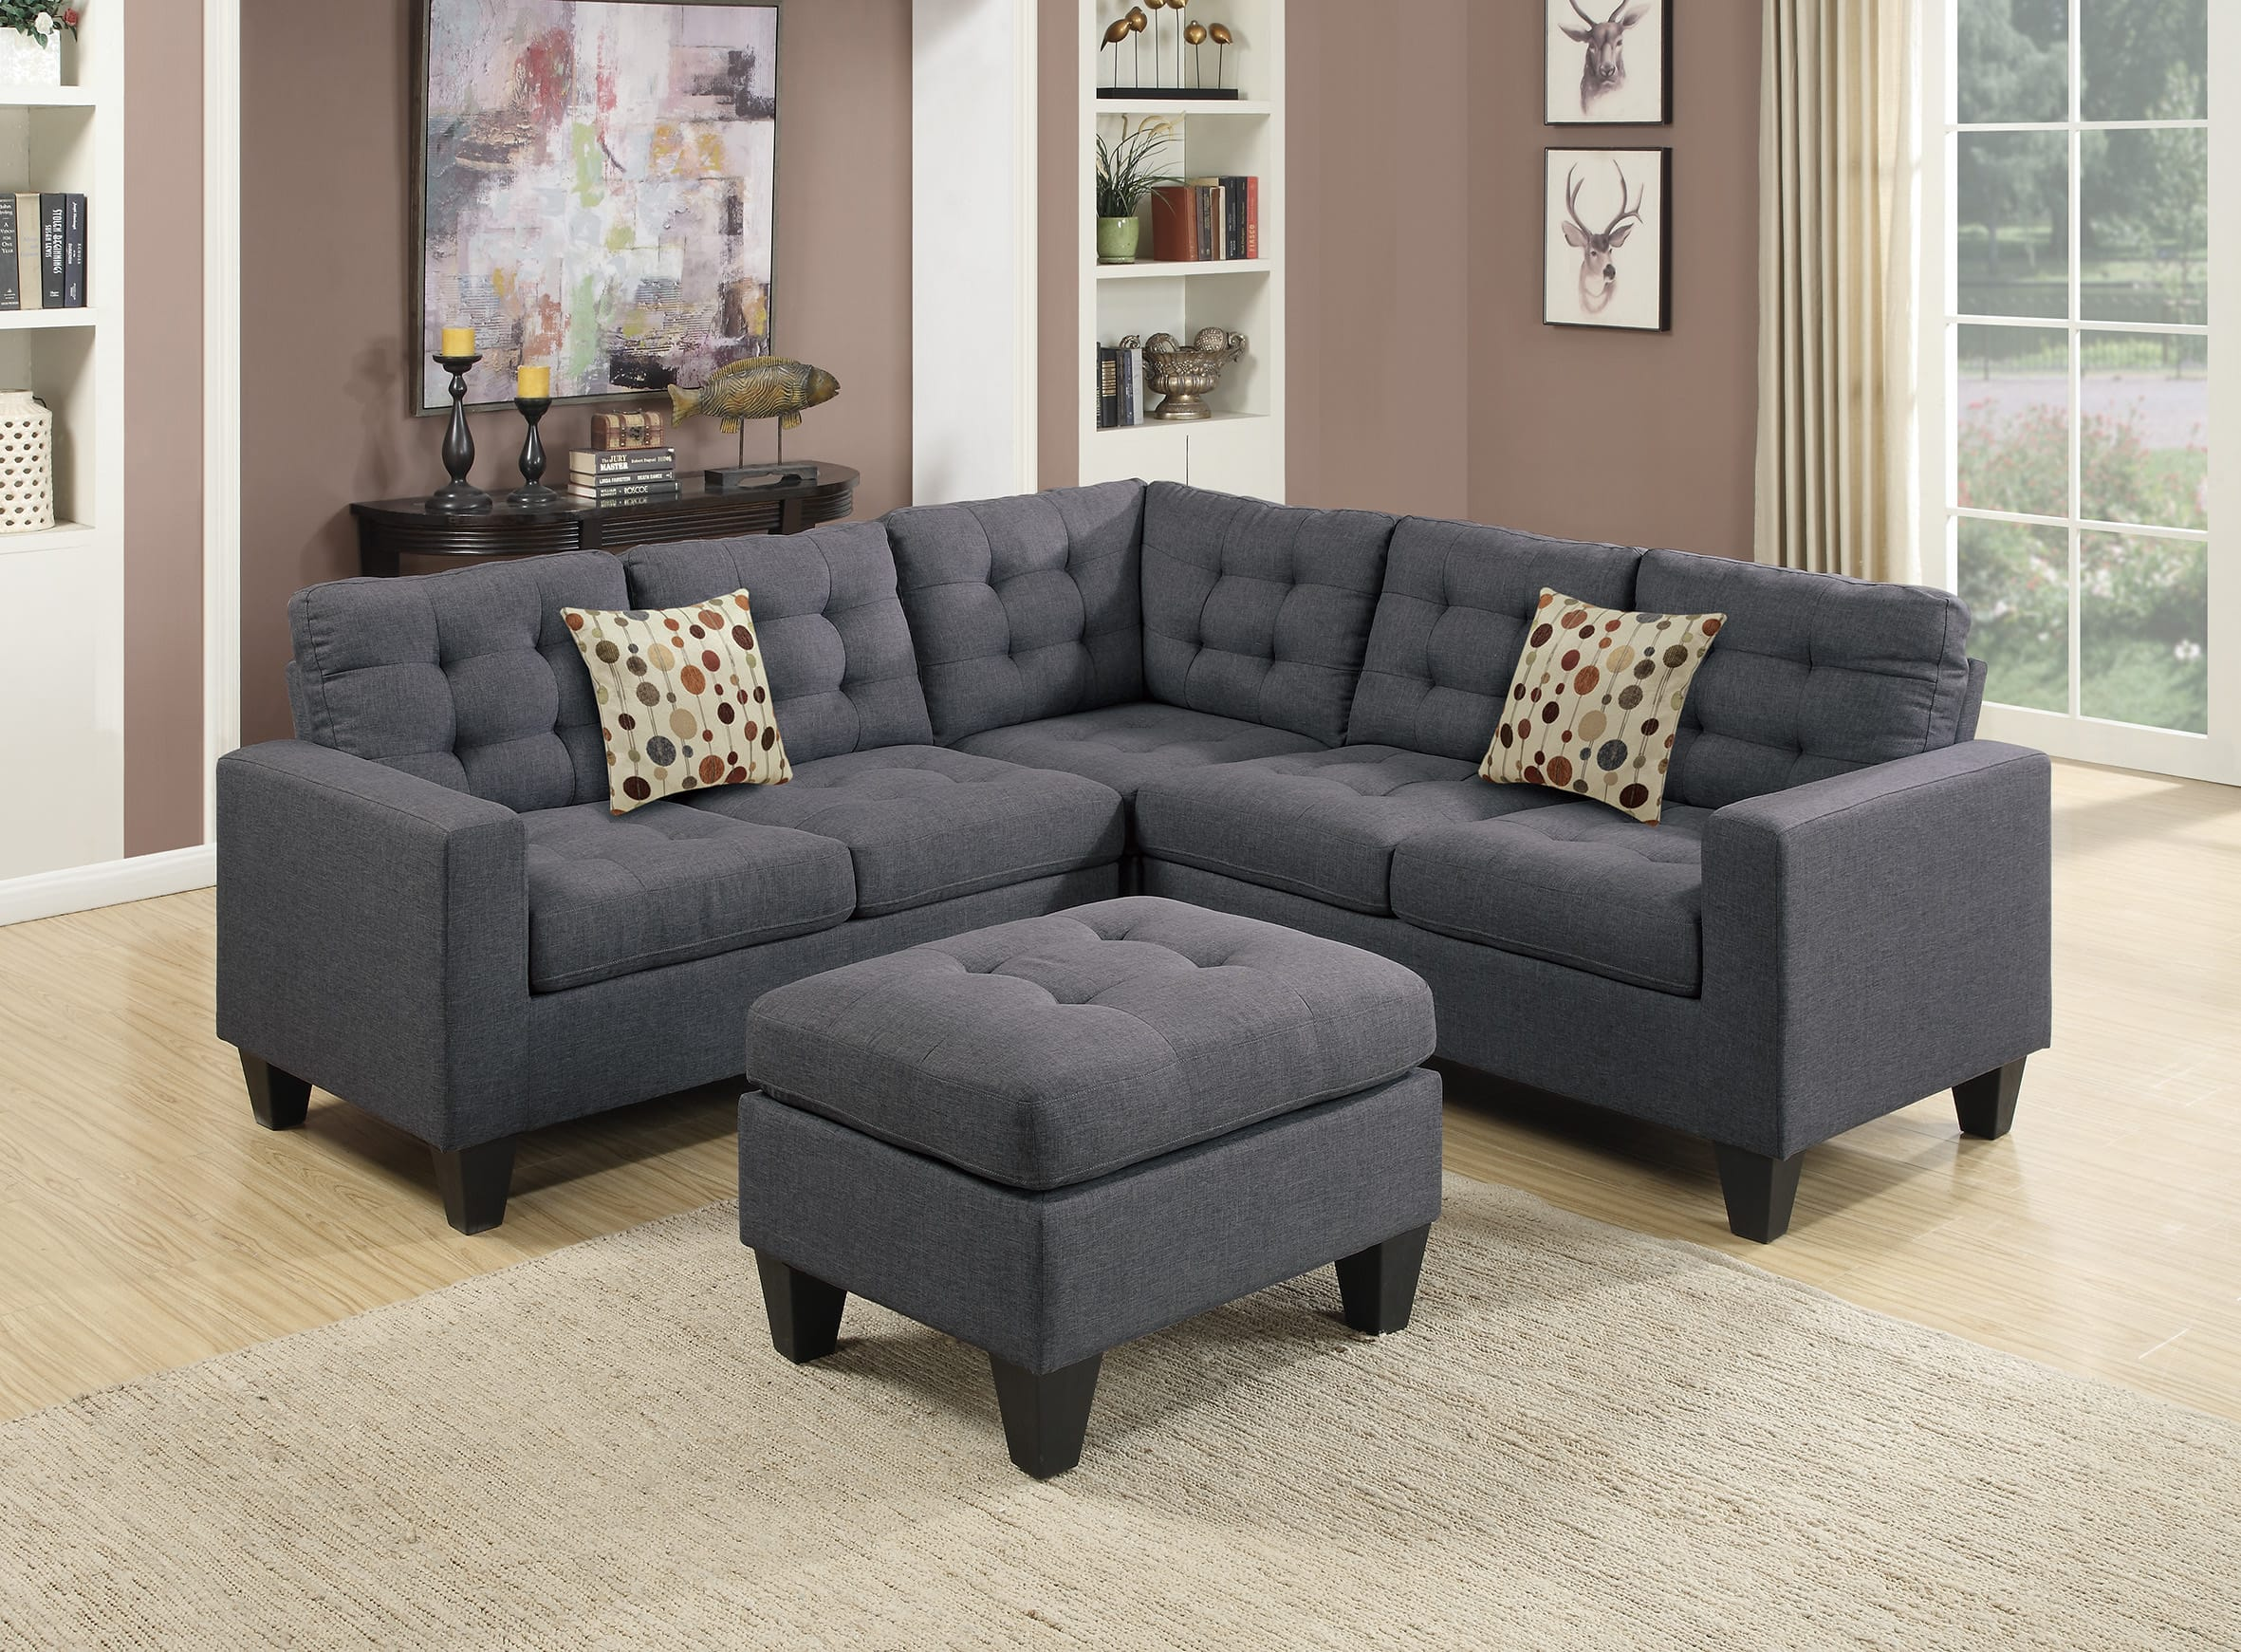 F6935 Blue Gray 4 Pcs Sectional Sofa Set by Poundex